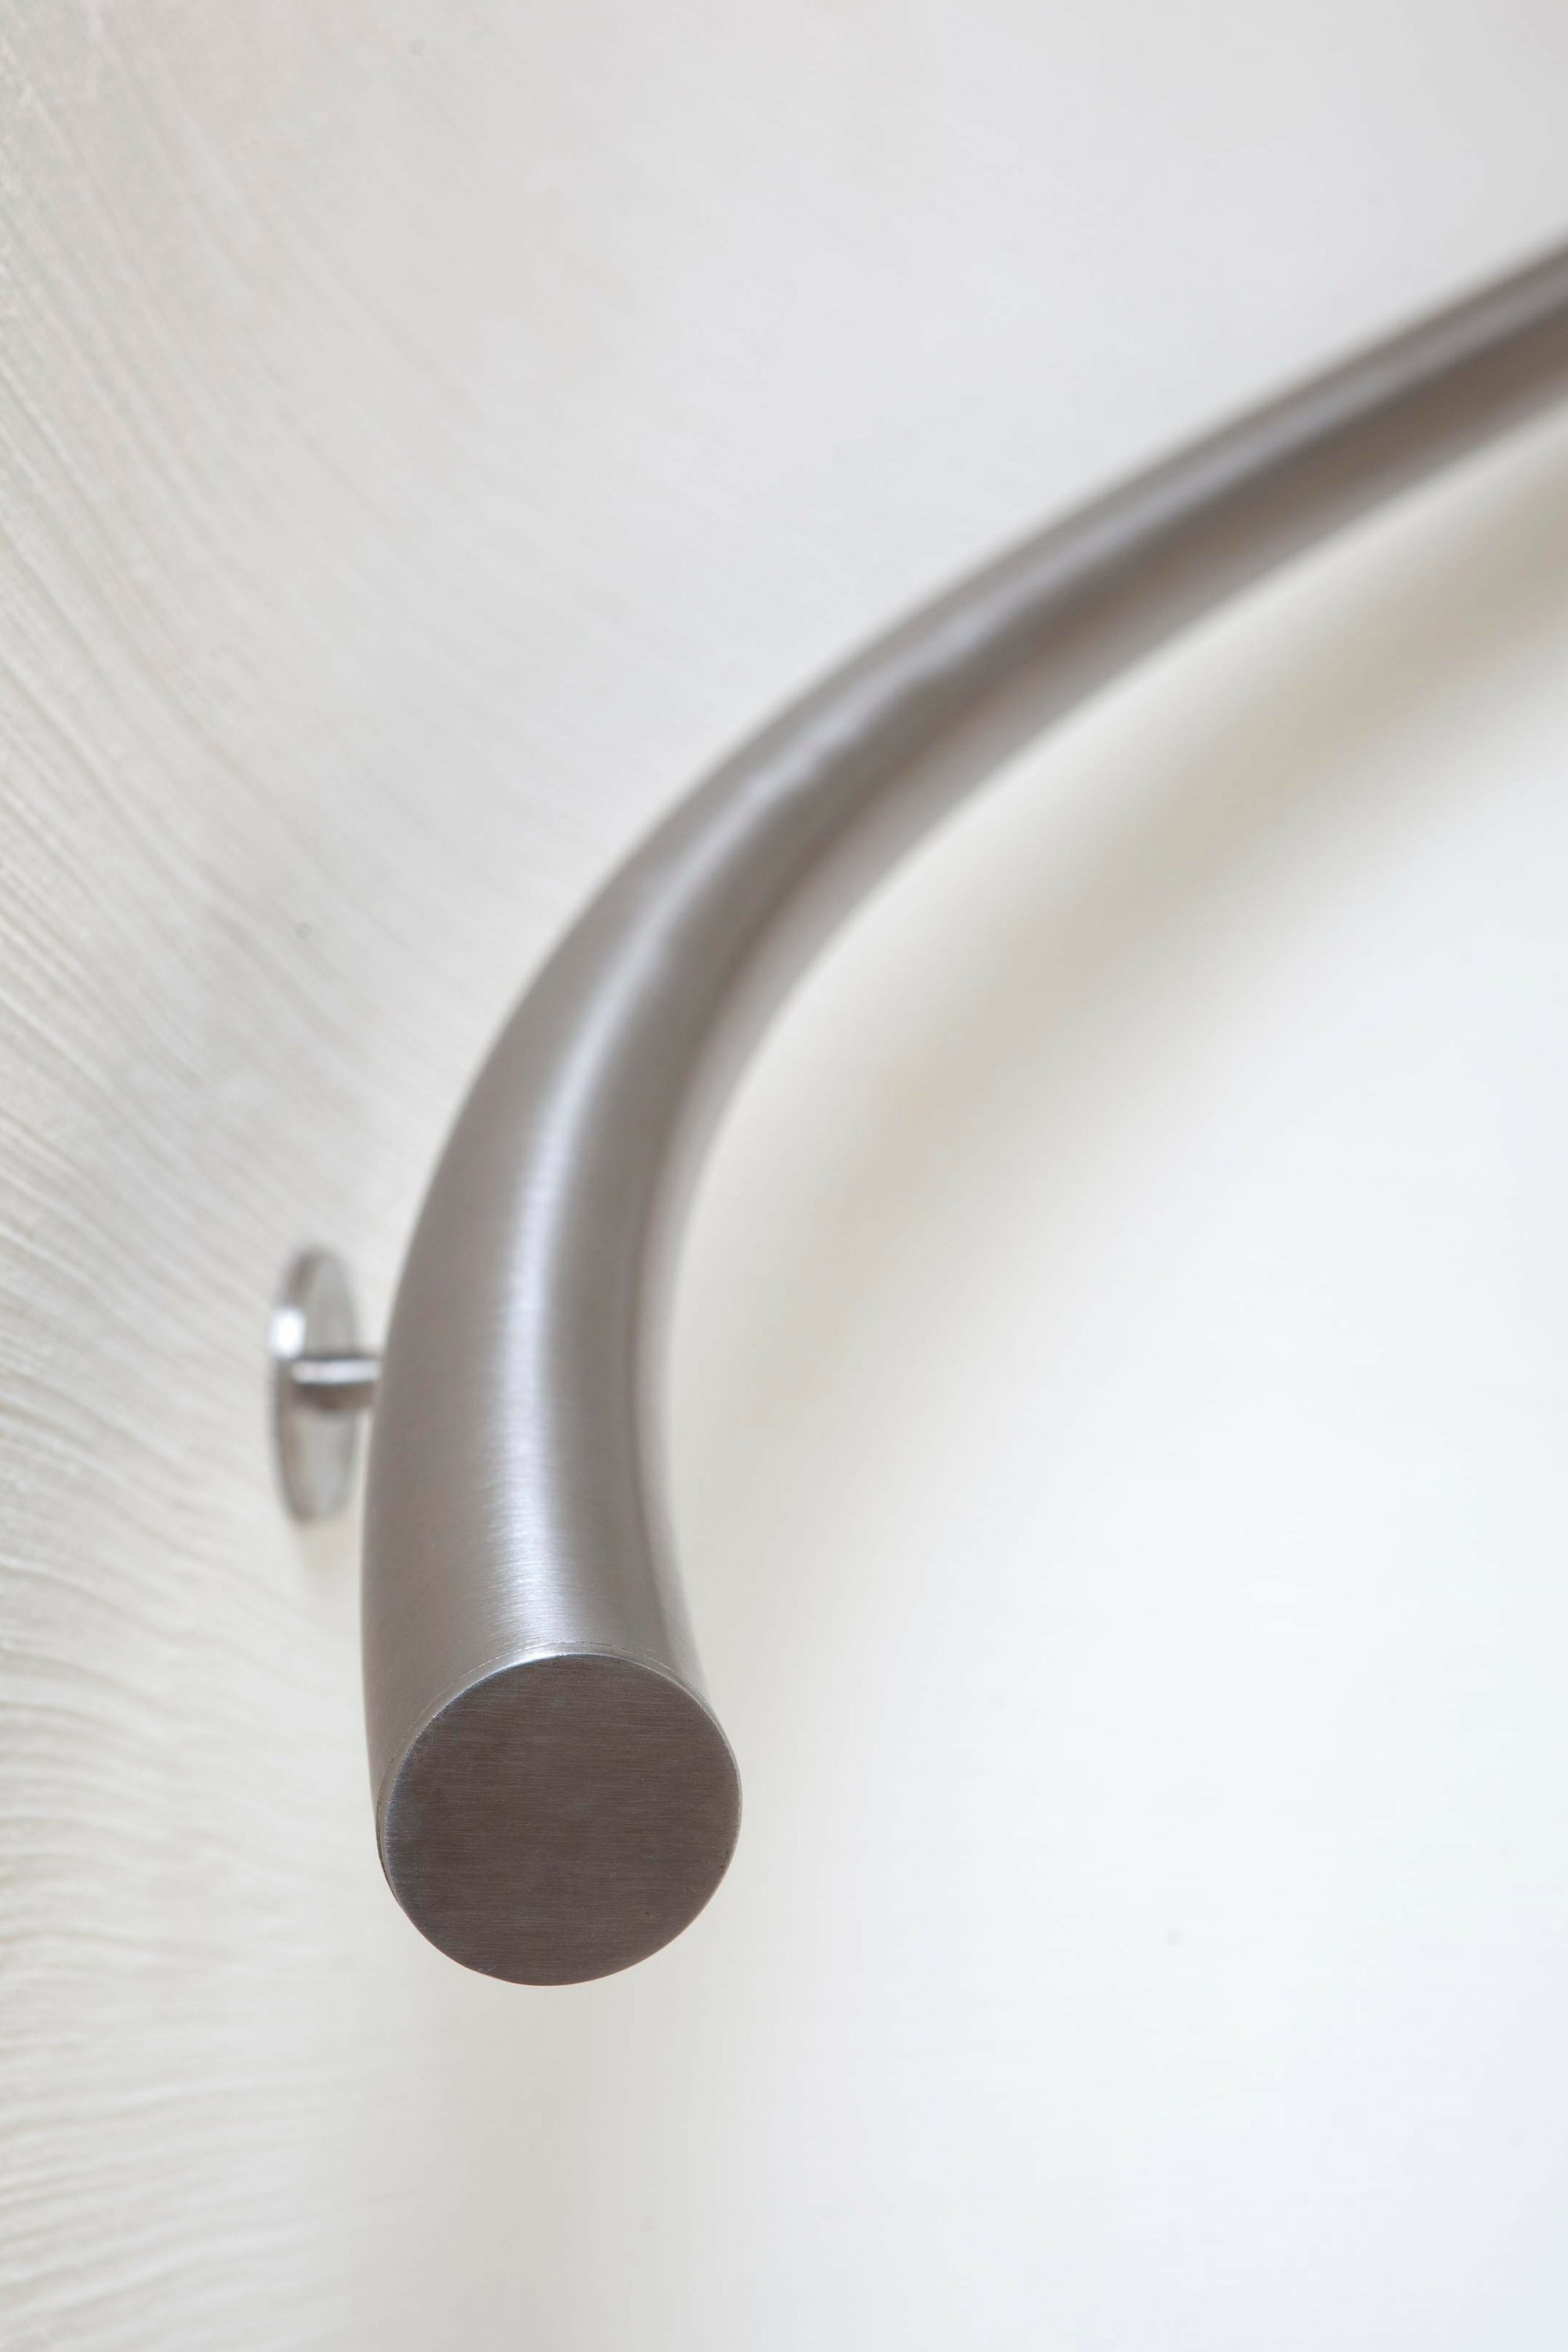 Satin polished stainless steel handrail